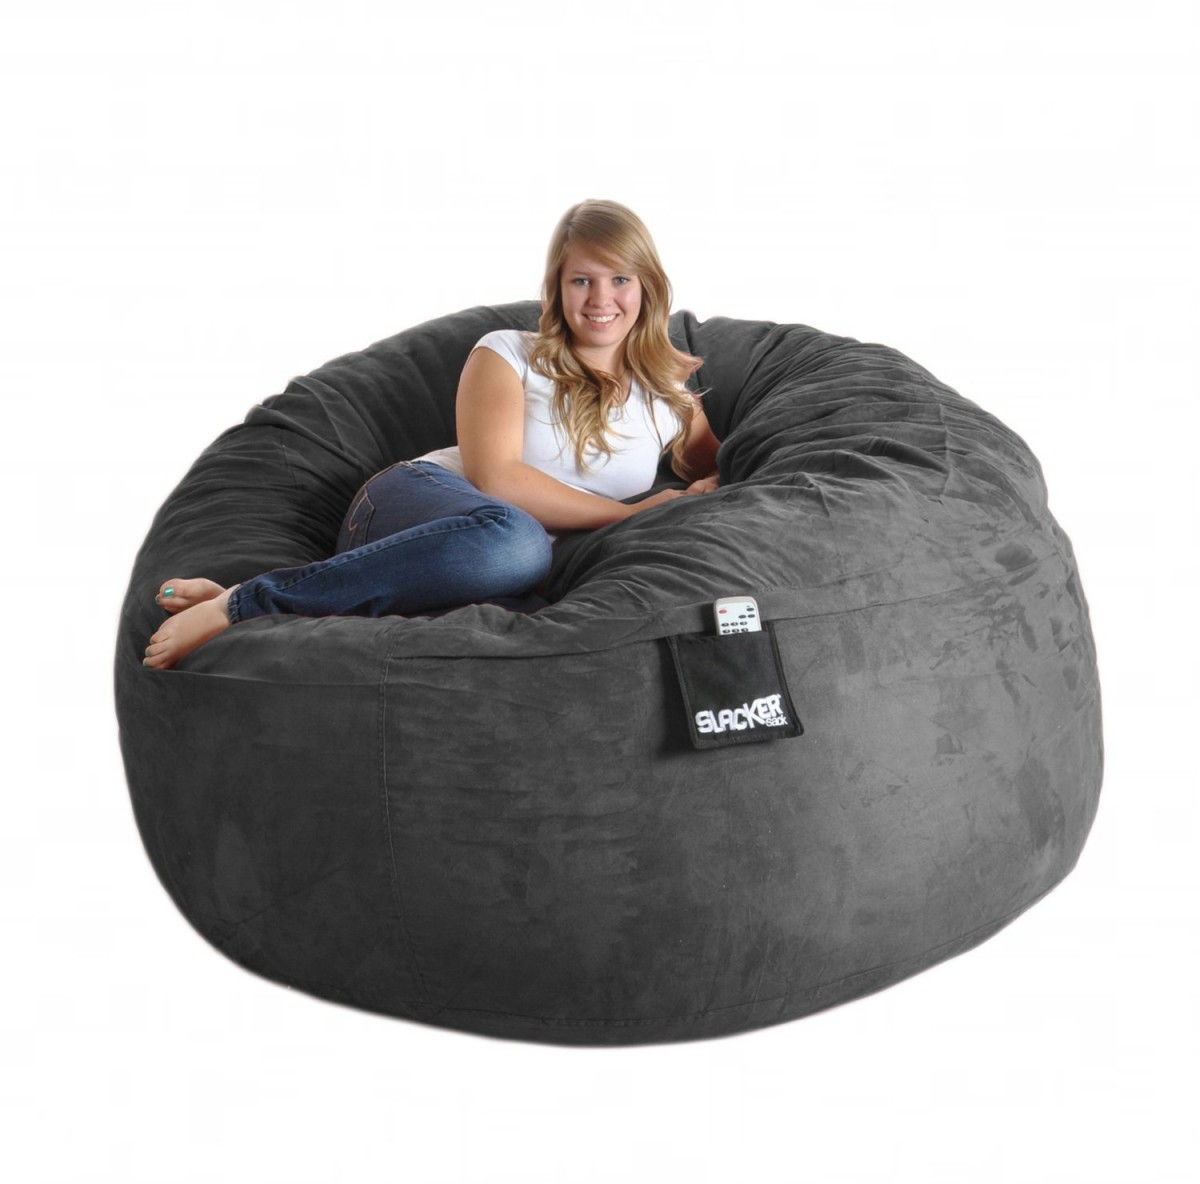 Best Bean Bag Chairs For Adults Ideas With Images